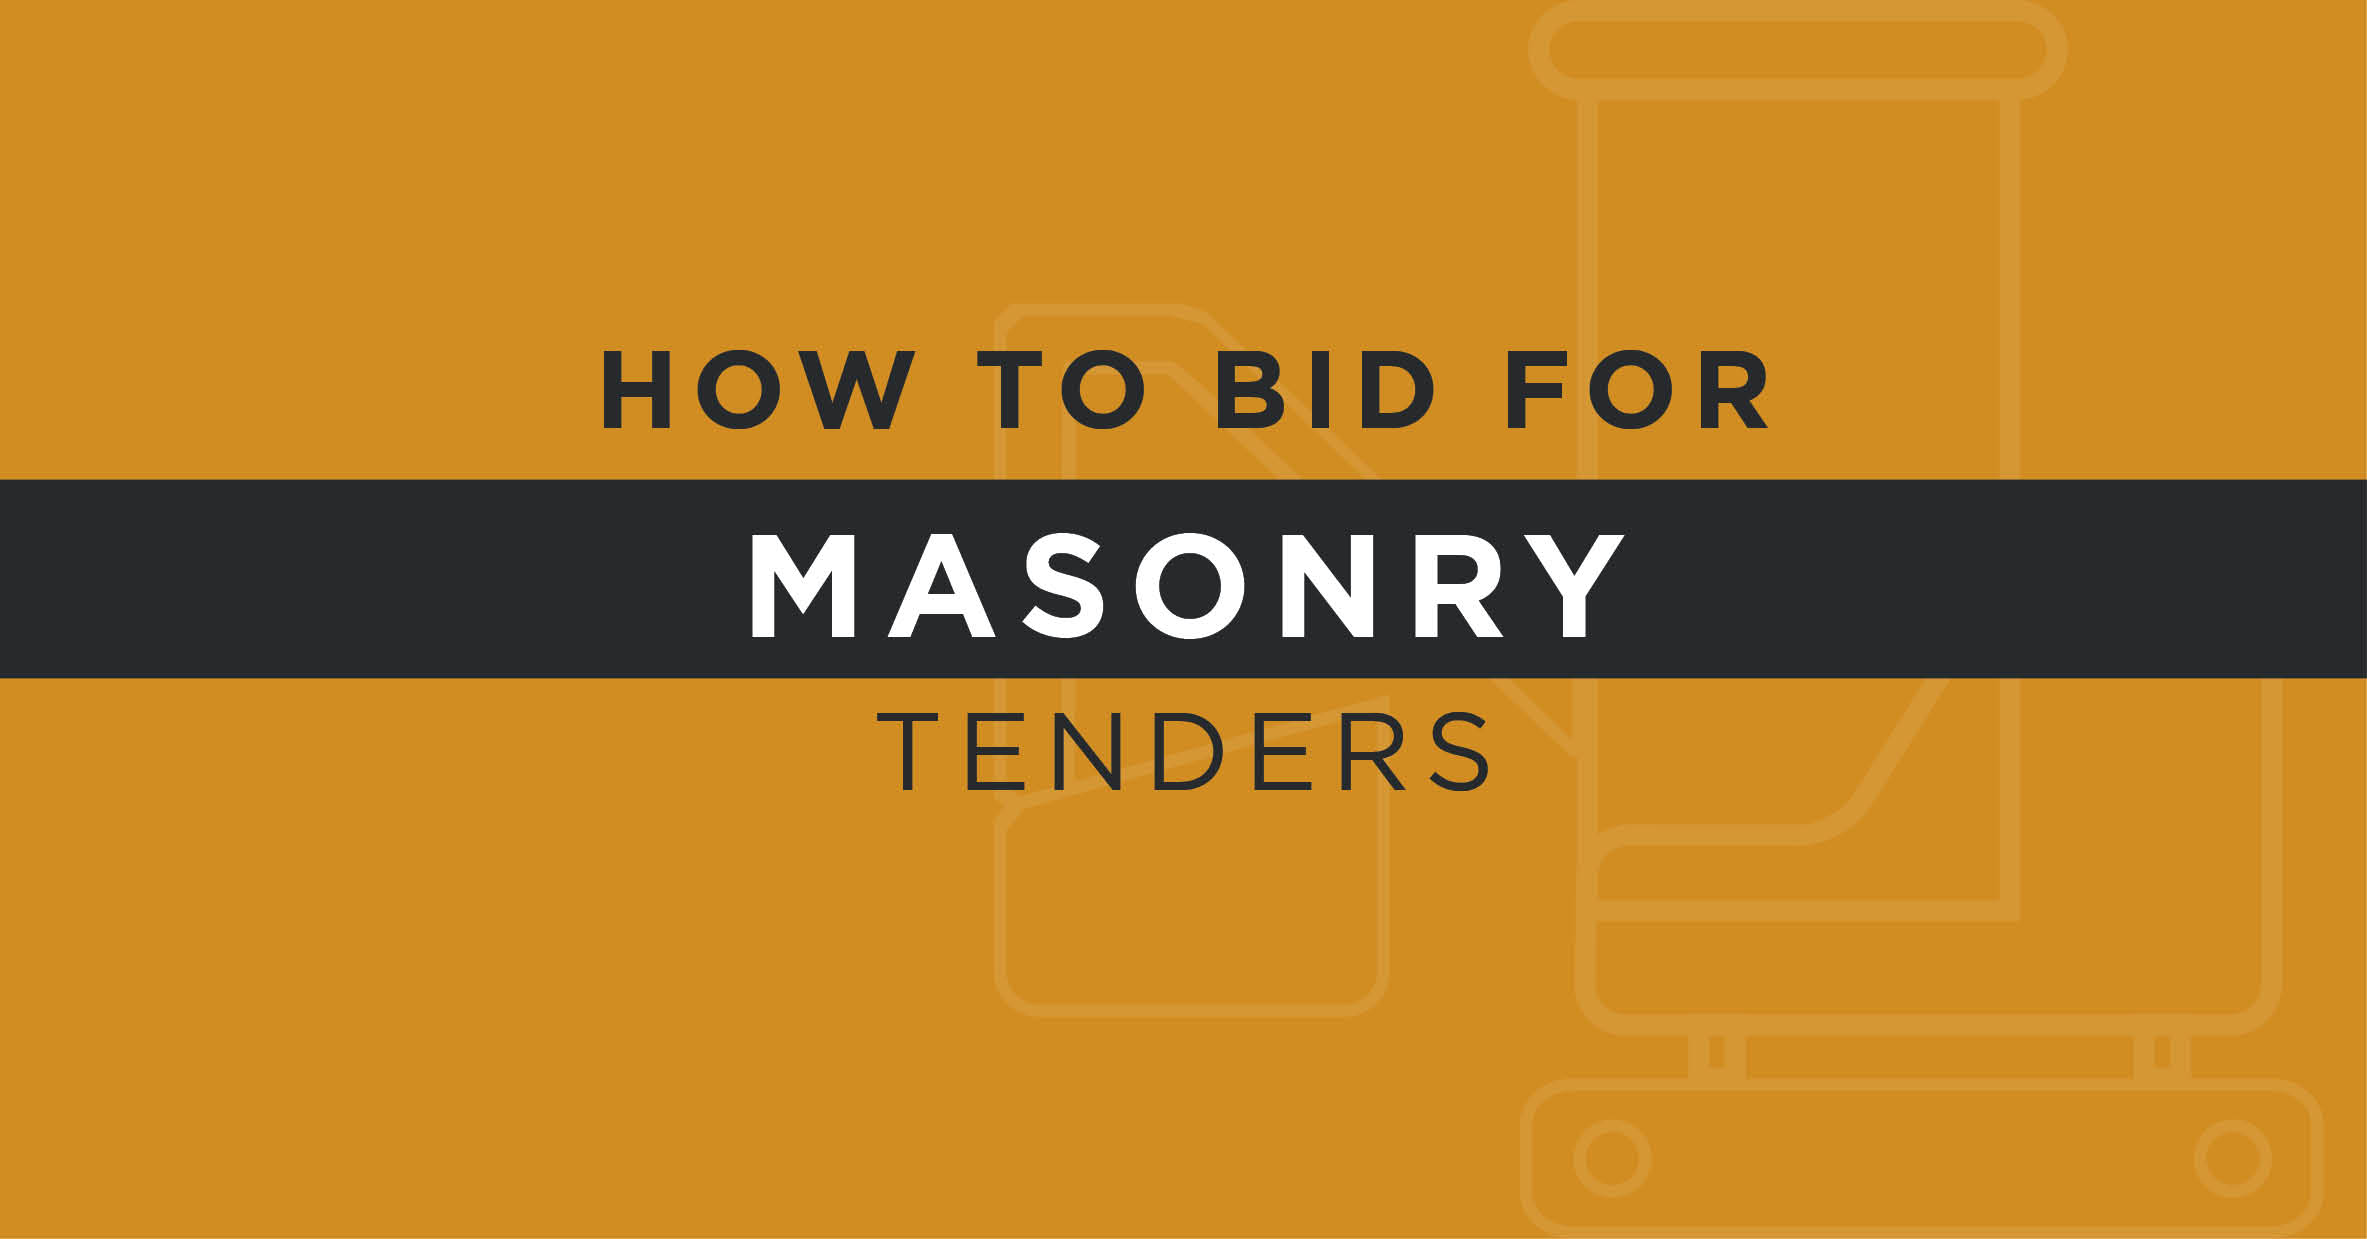 Masonry Tenders & Contracts